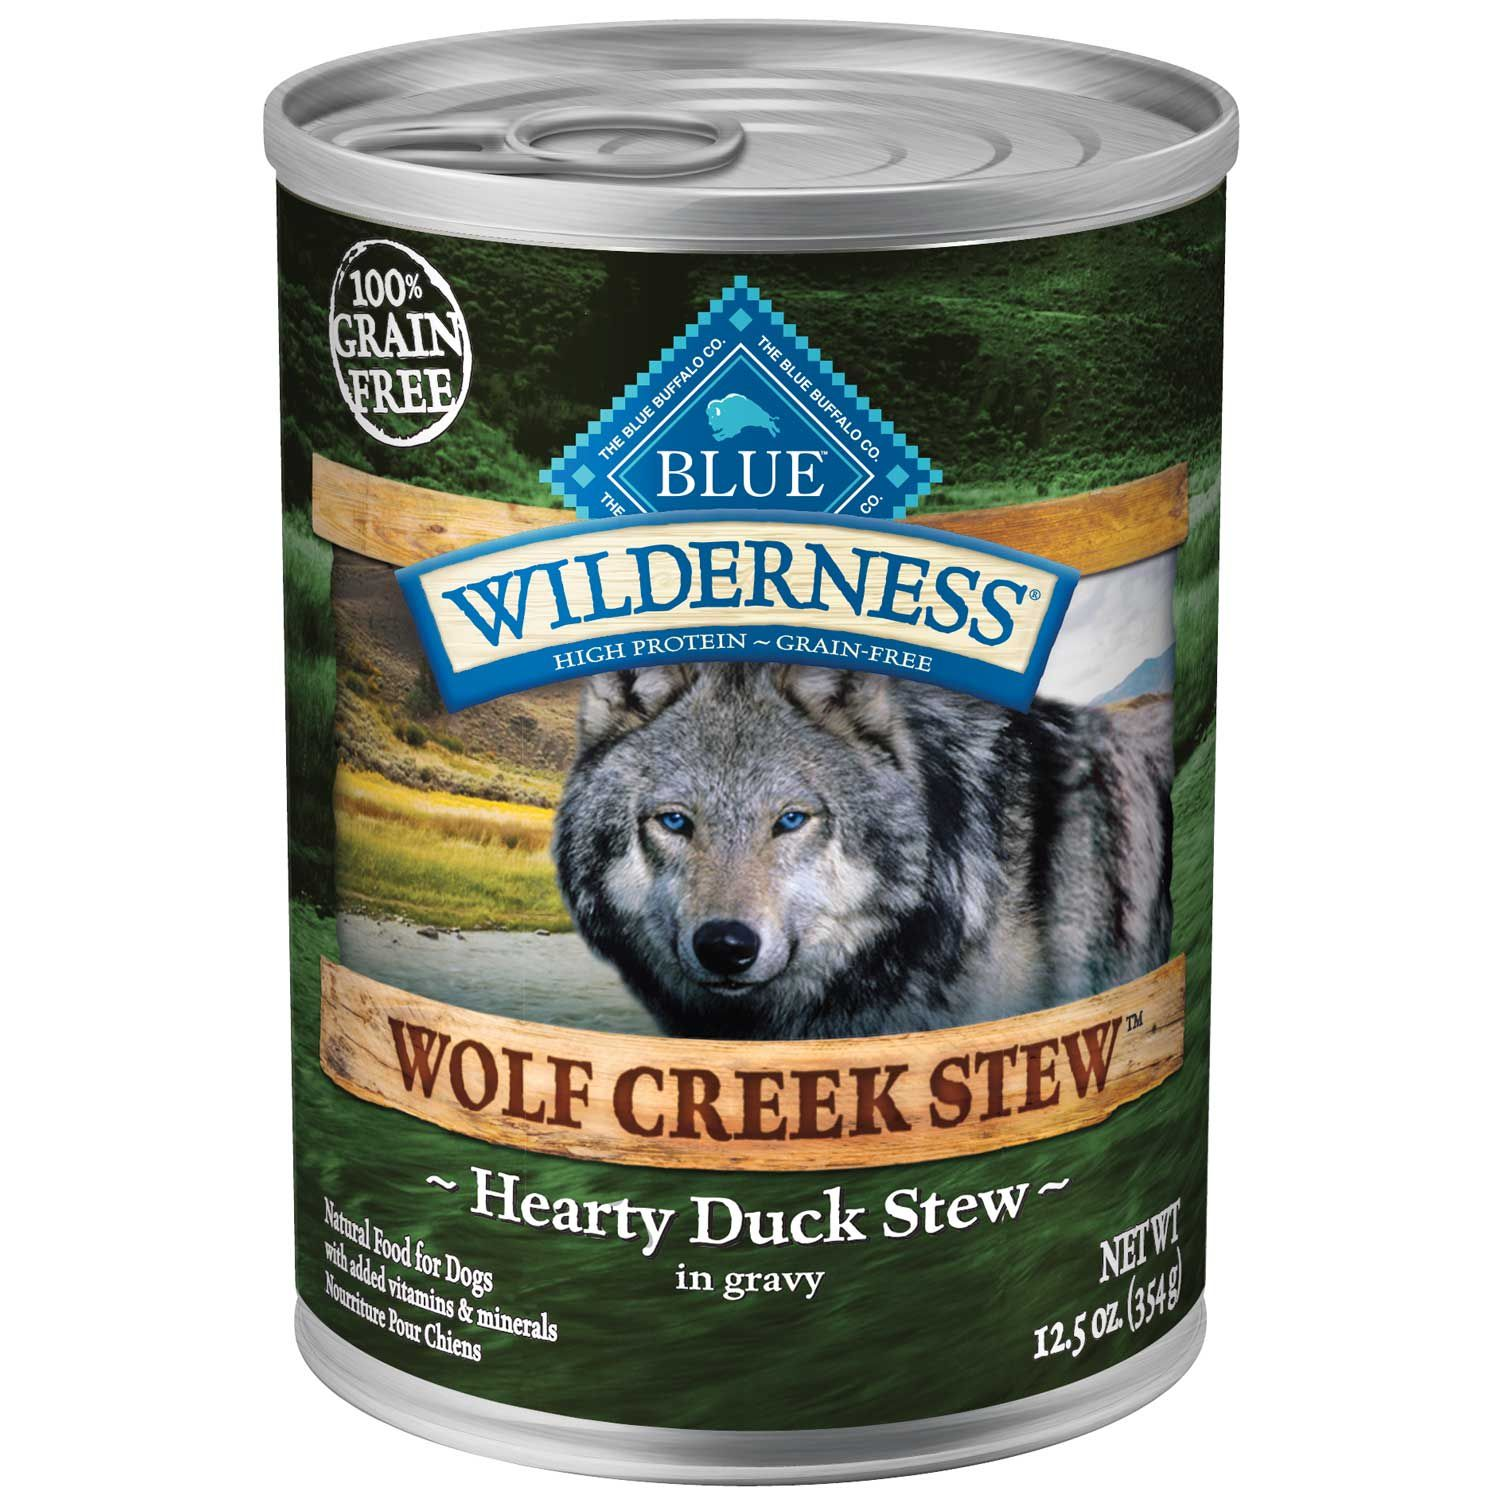 Blue Buffalo Blue Wilderness Wolf Creek Stew Hearty Duck Stew Wet